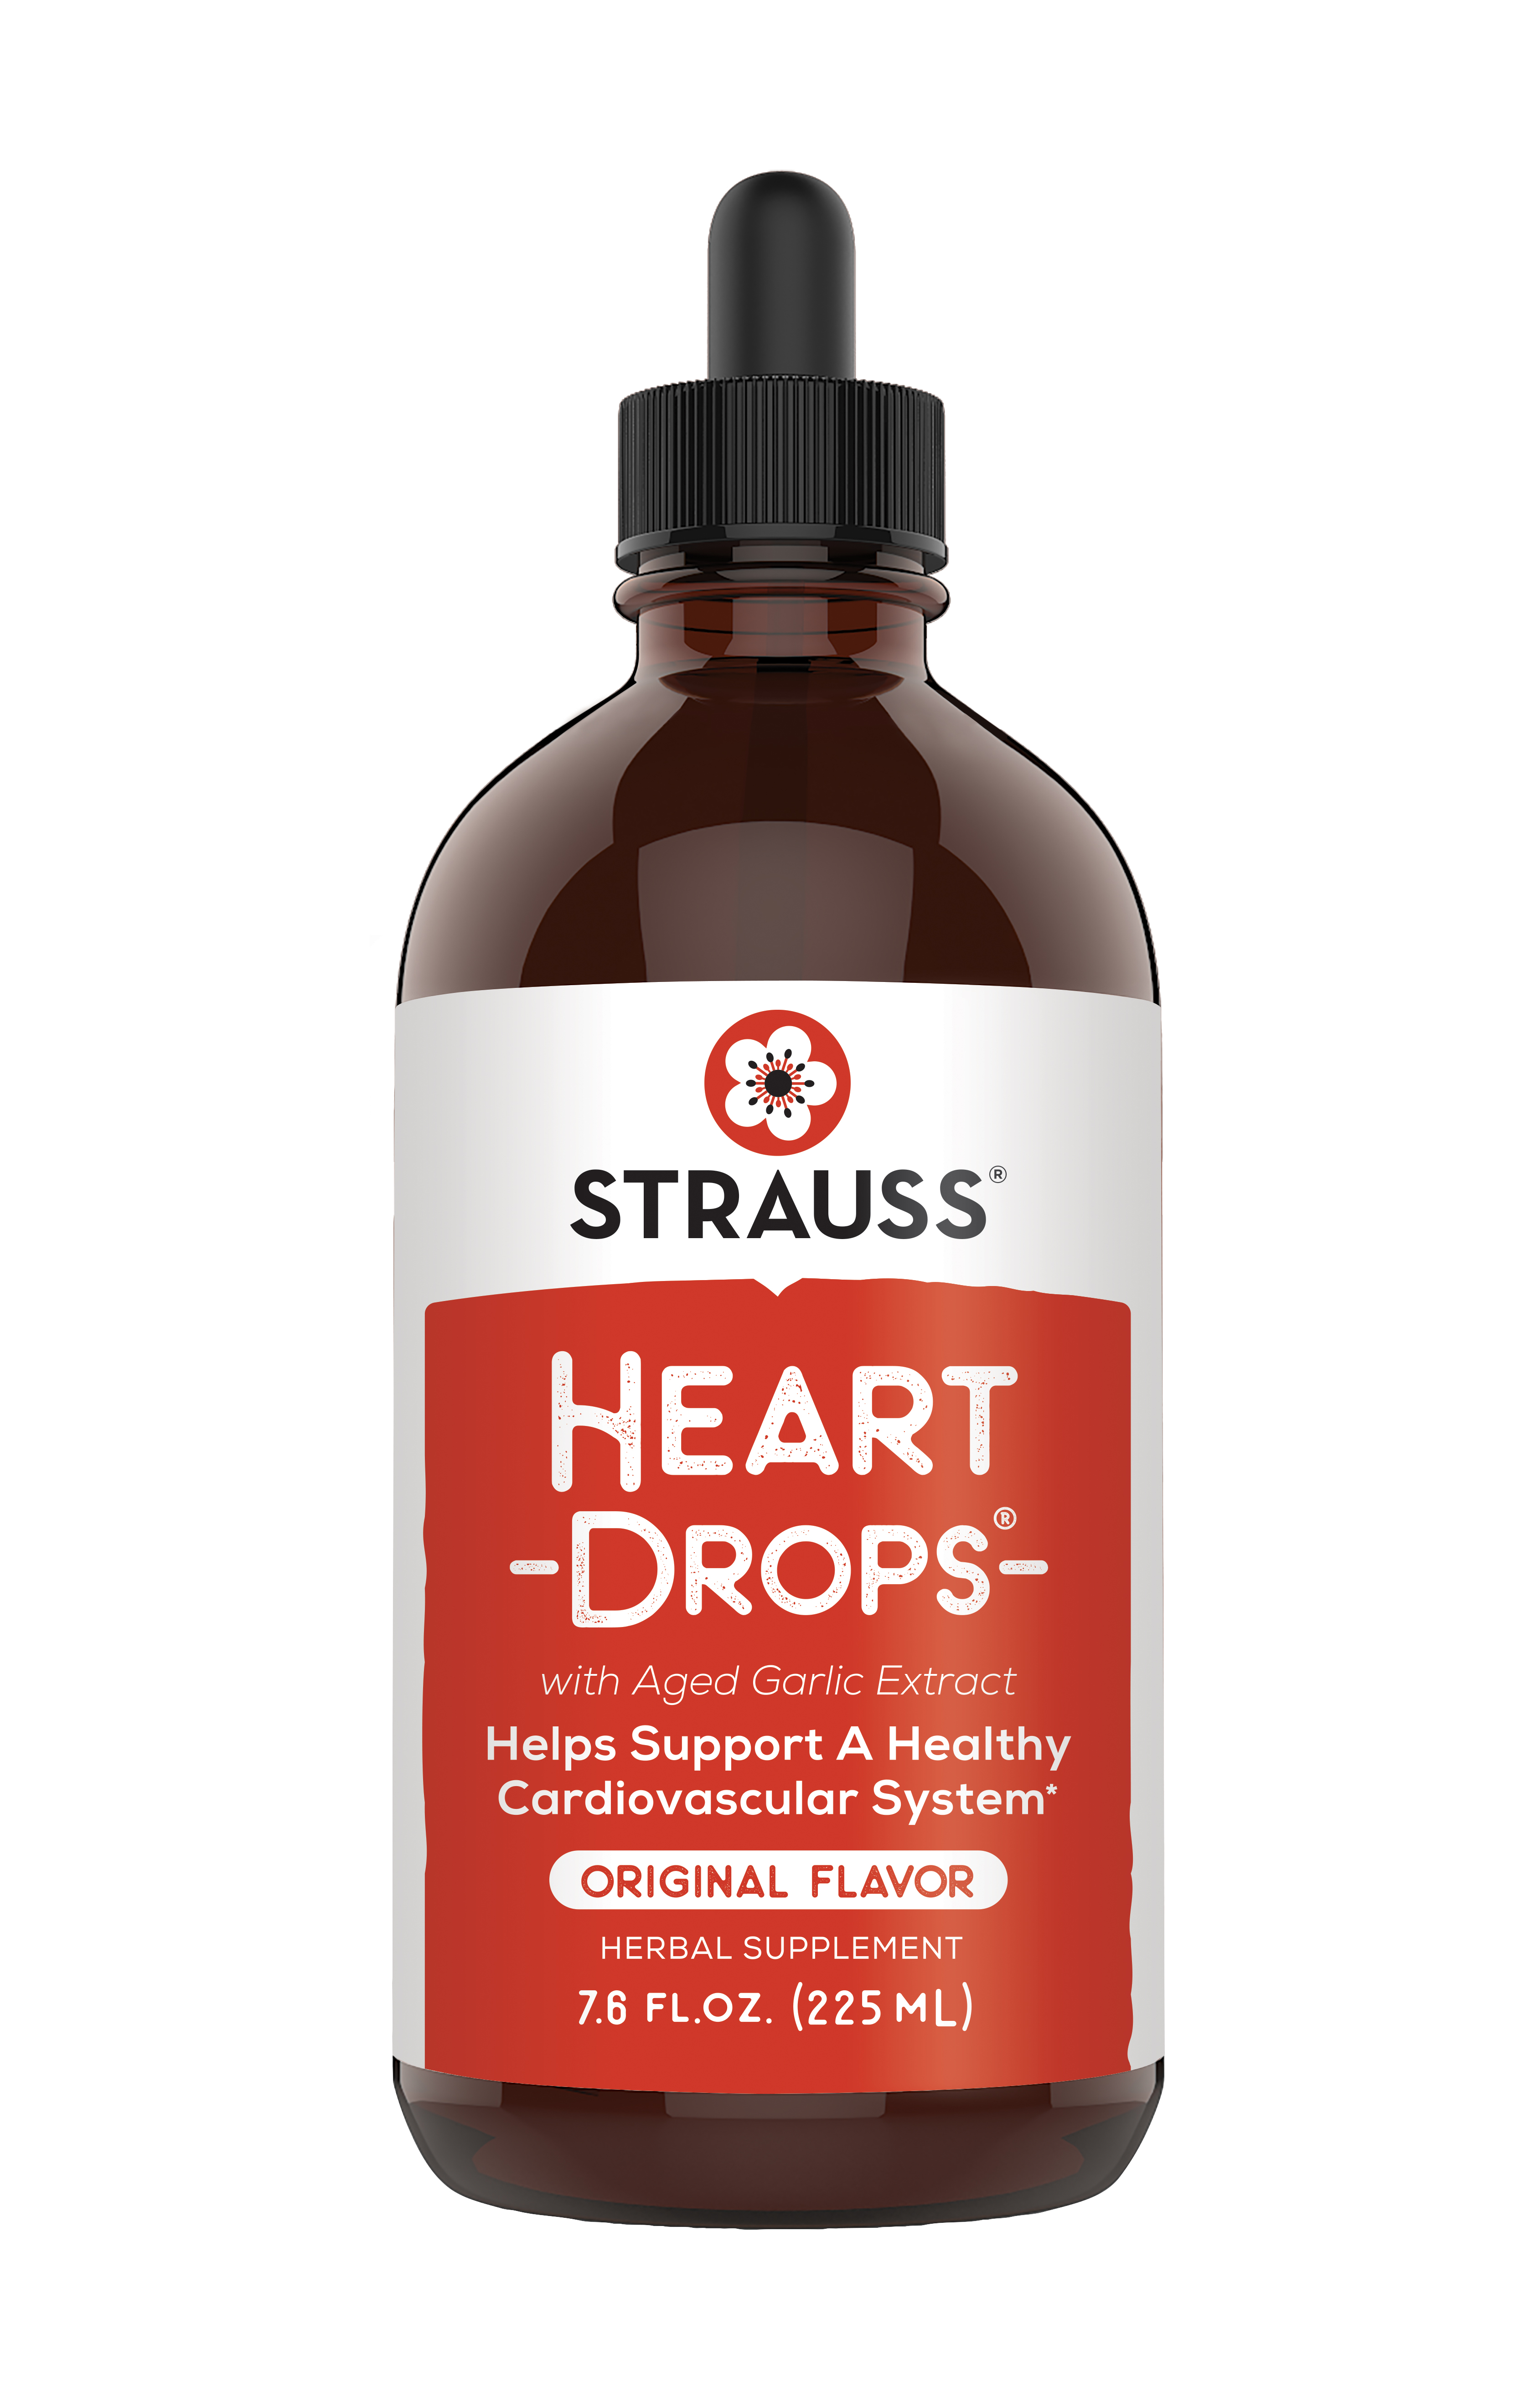 Strauss Heartdrops - 7.6 fl oz